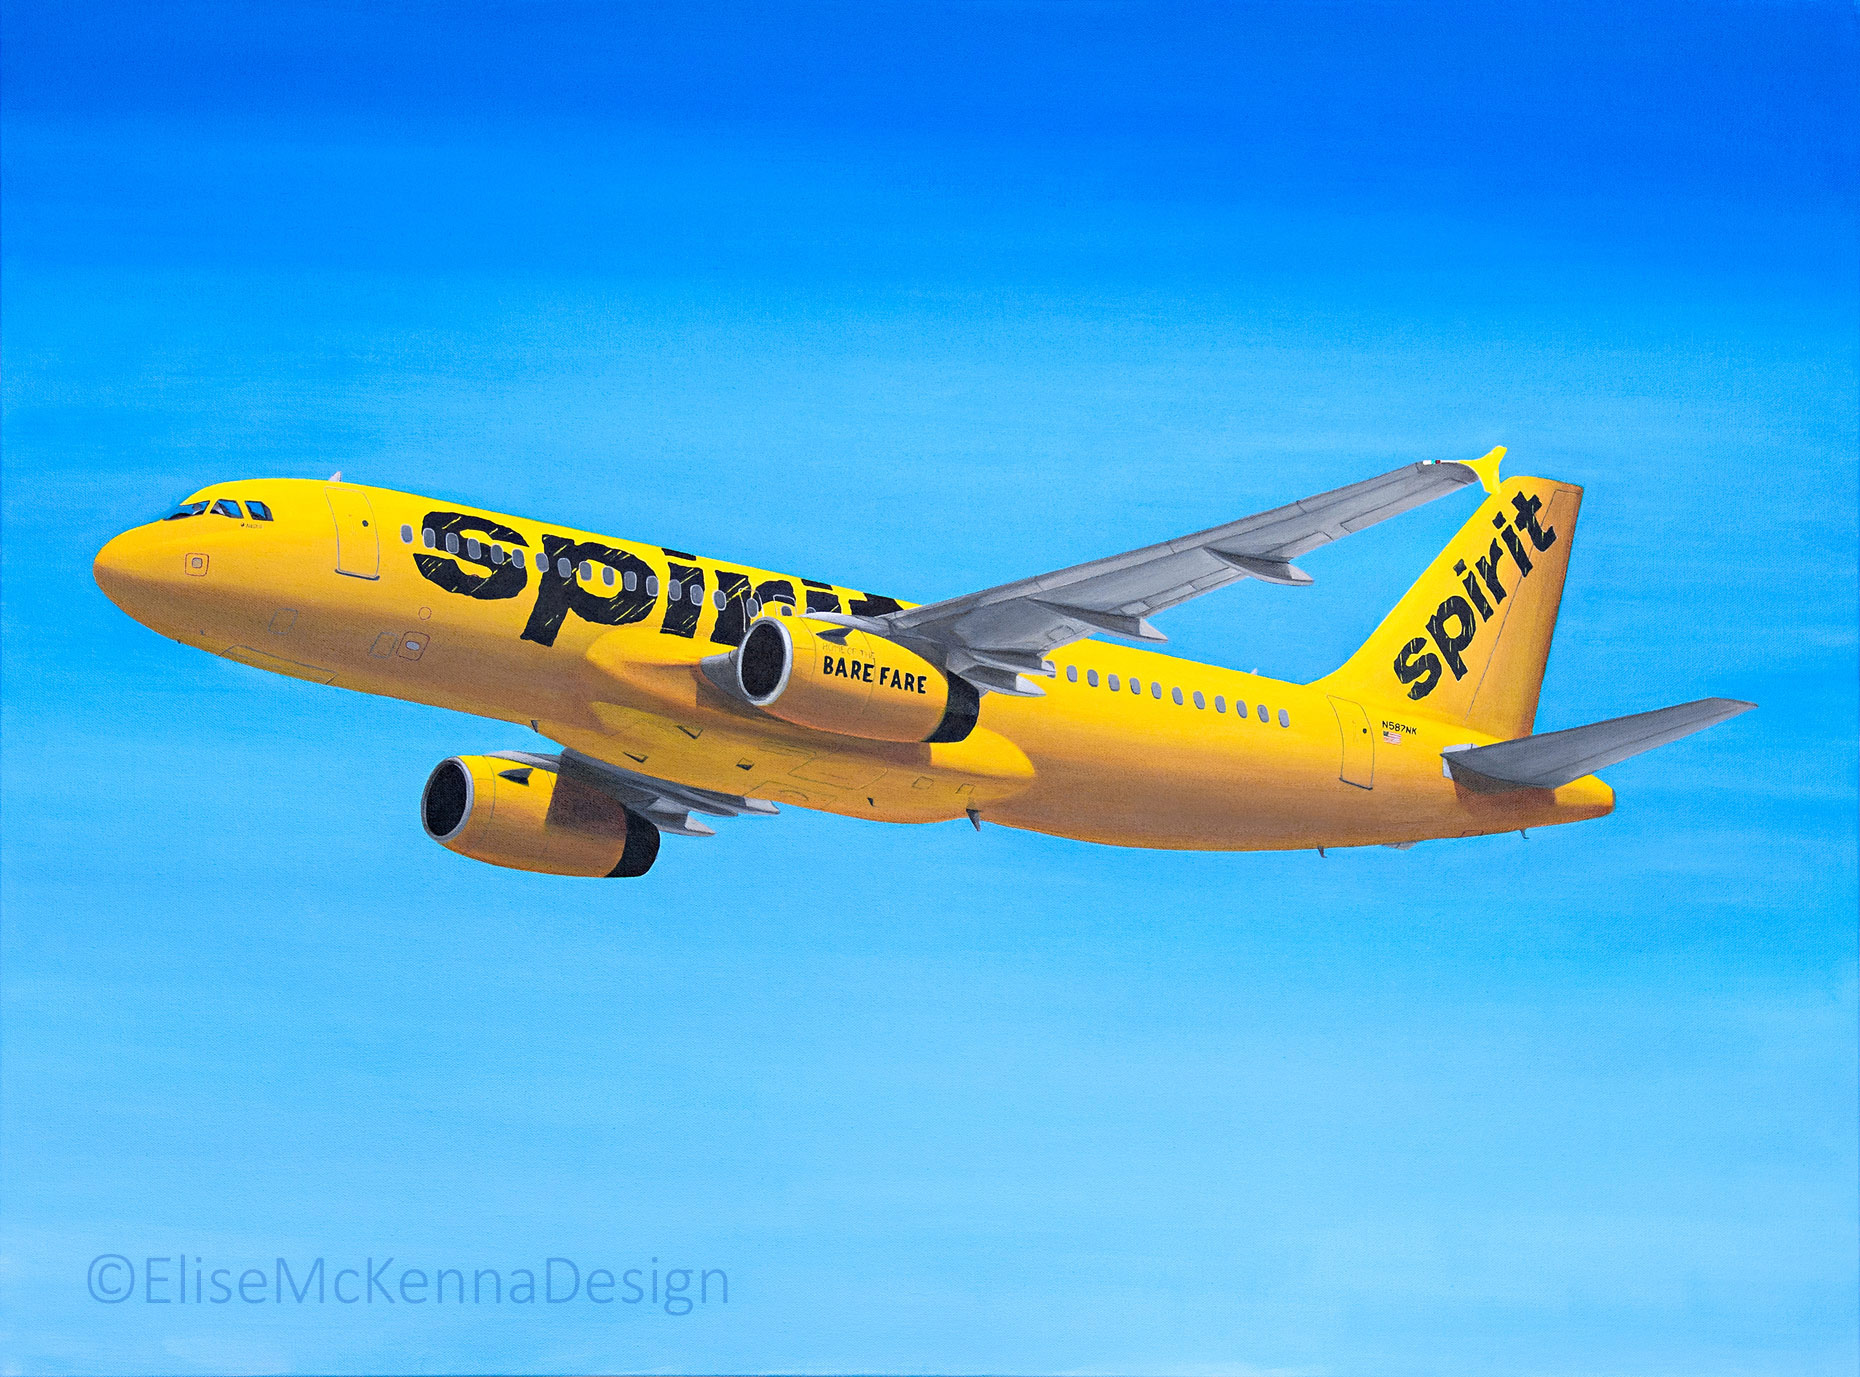 """Spirit Airlines Airbus A320; original: 20 x 30 x 1"""" (not for sale); prints available upon request"""